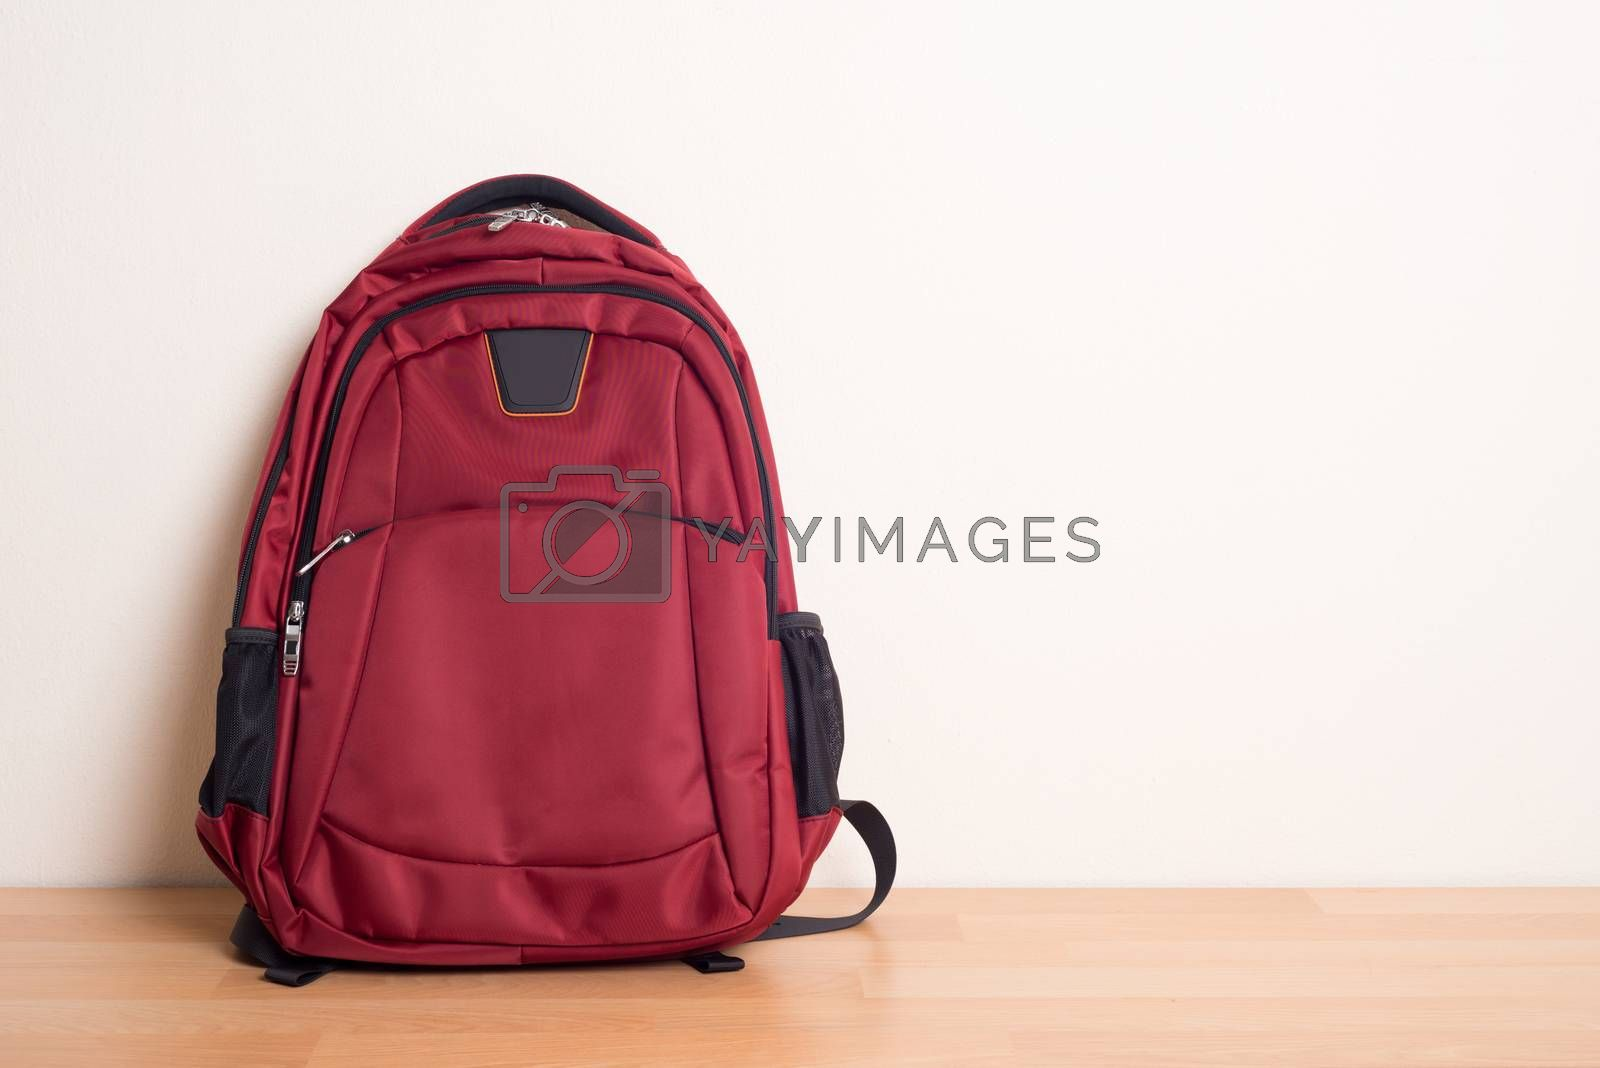 red school bag on wood table by Lerttanapunyaporn